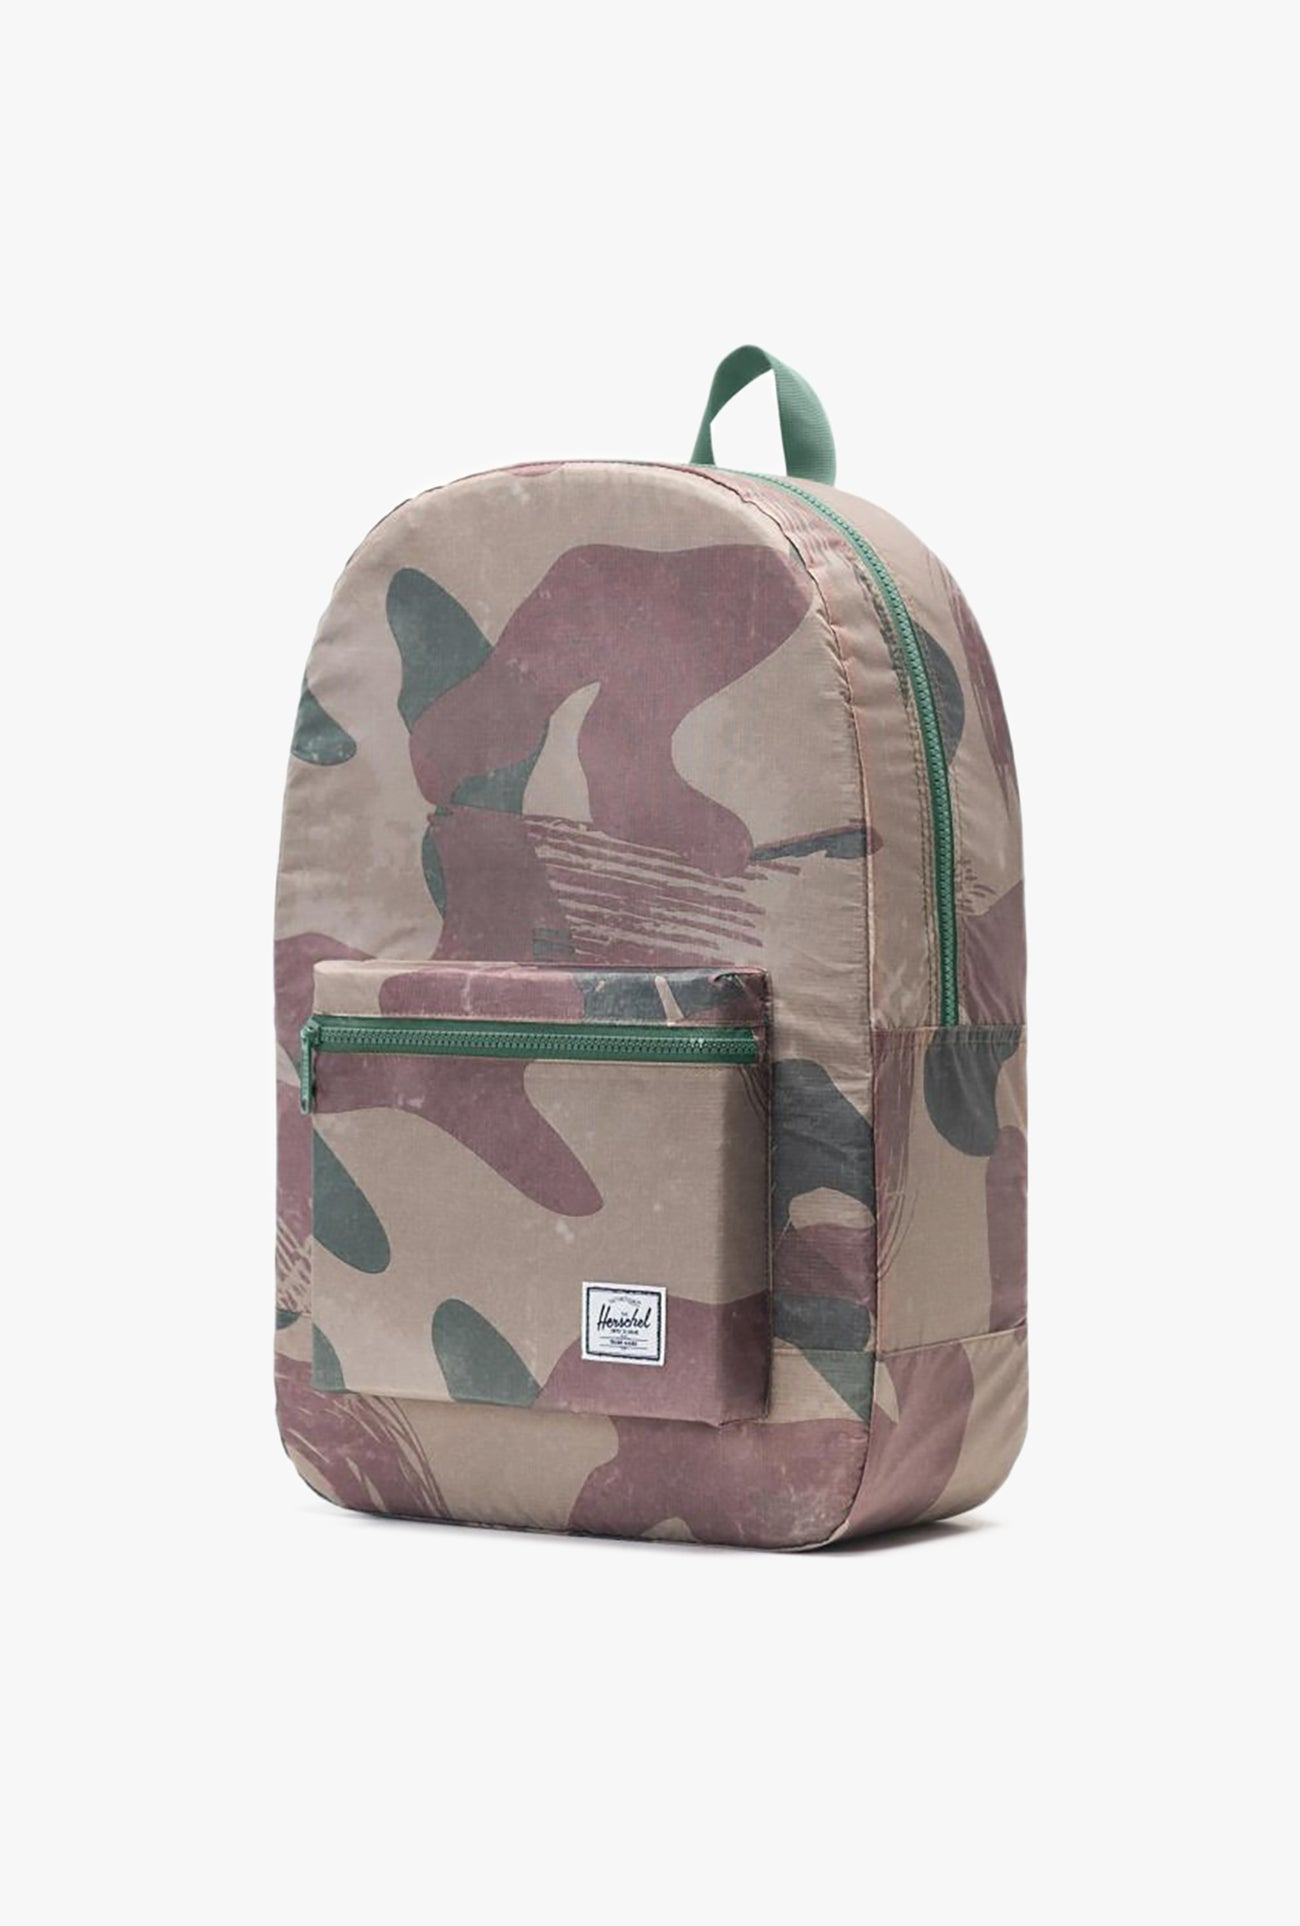 Packable Daypack - Camo